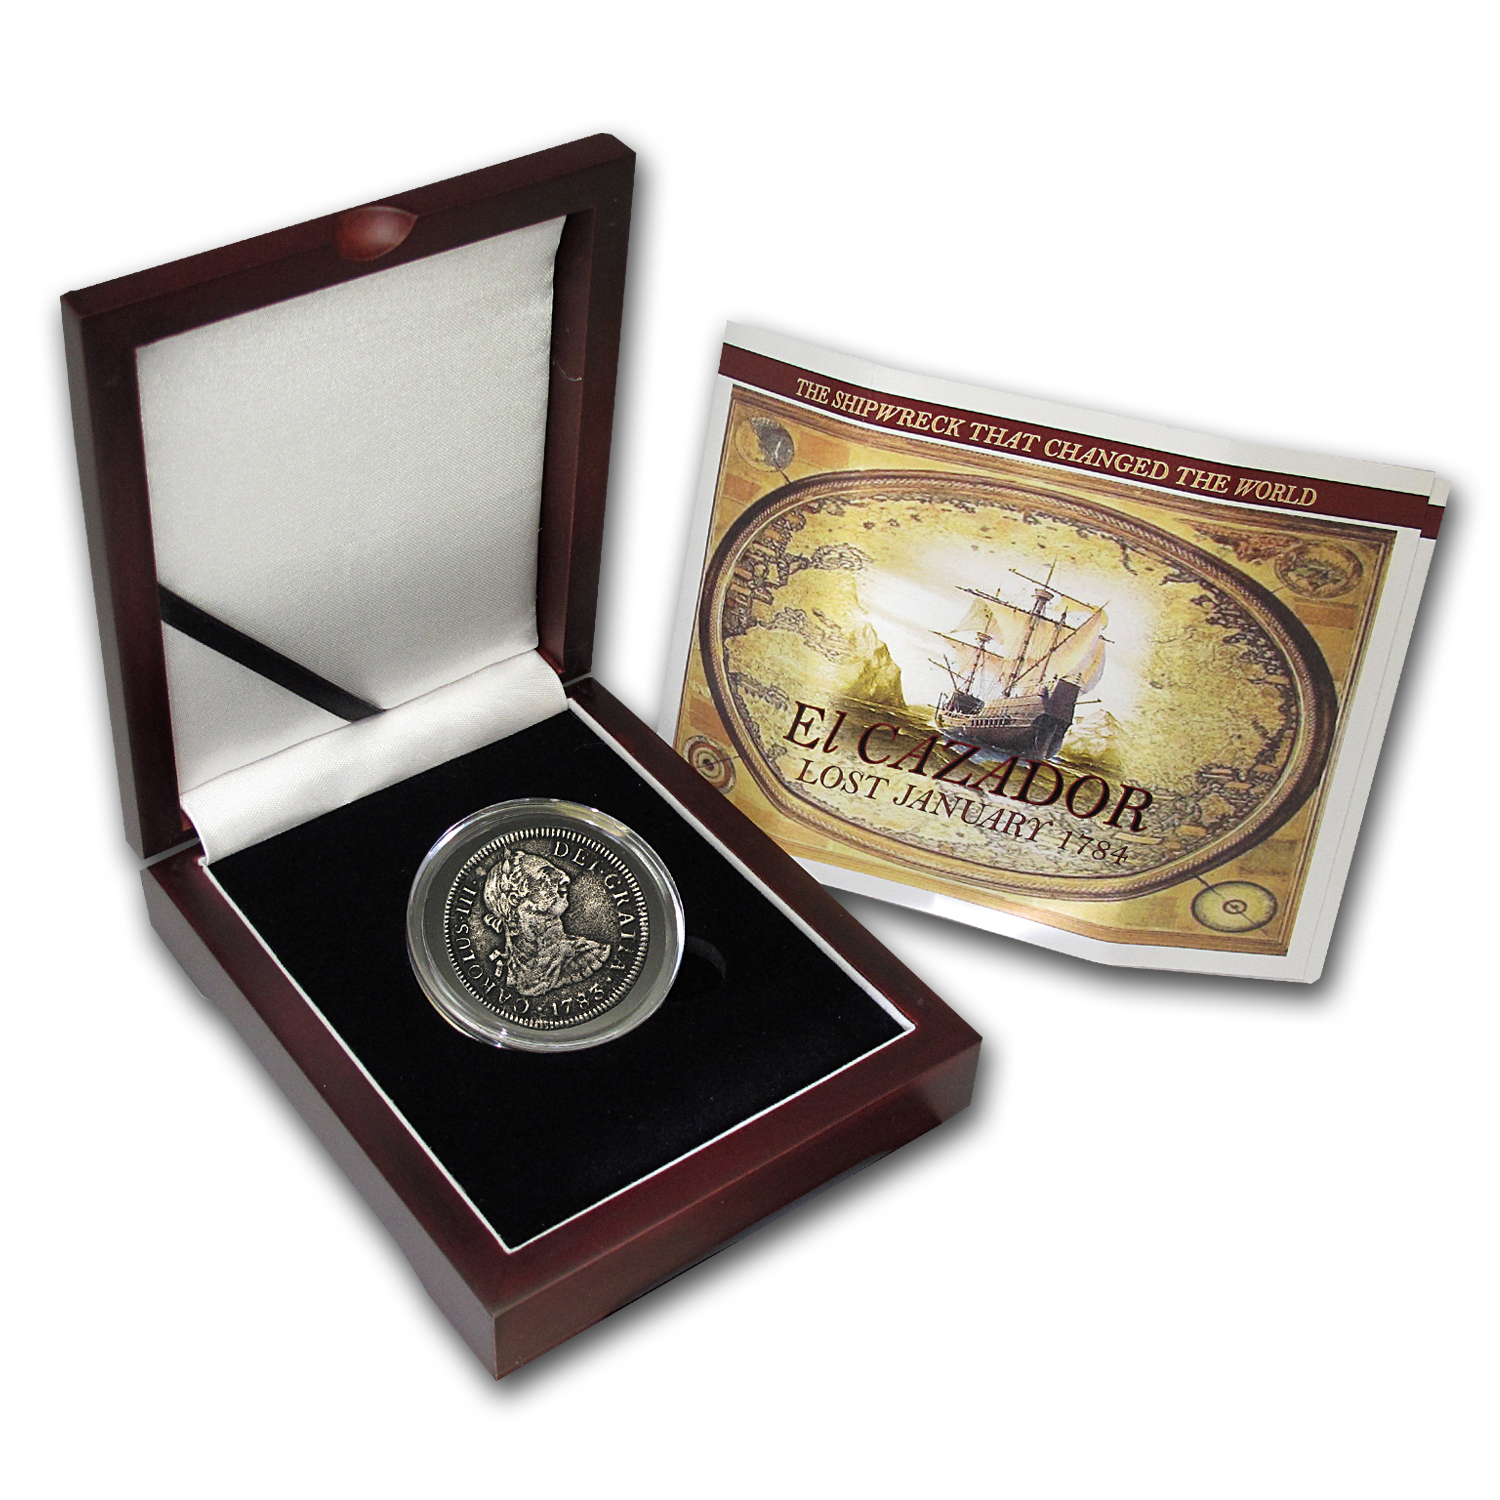 El Cazador Shipwreck 2 Reales Silver Collection